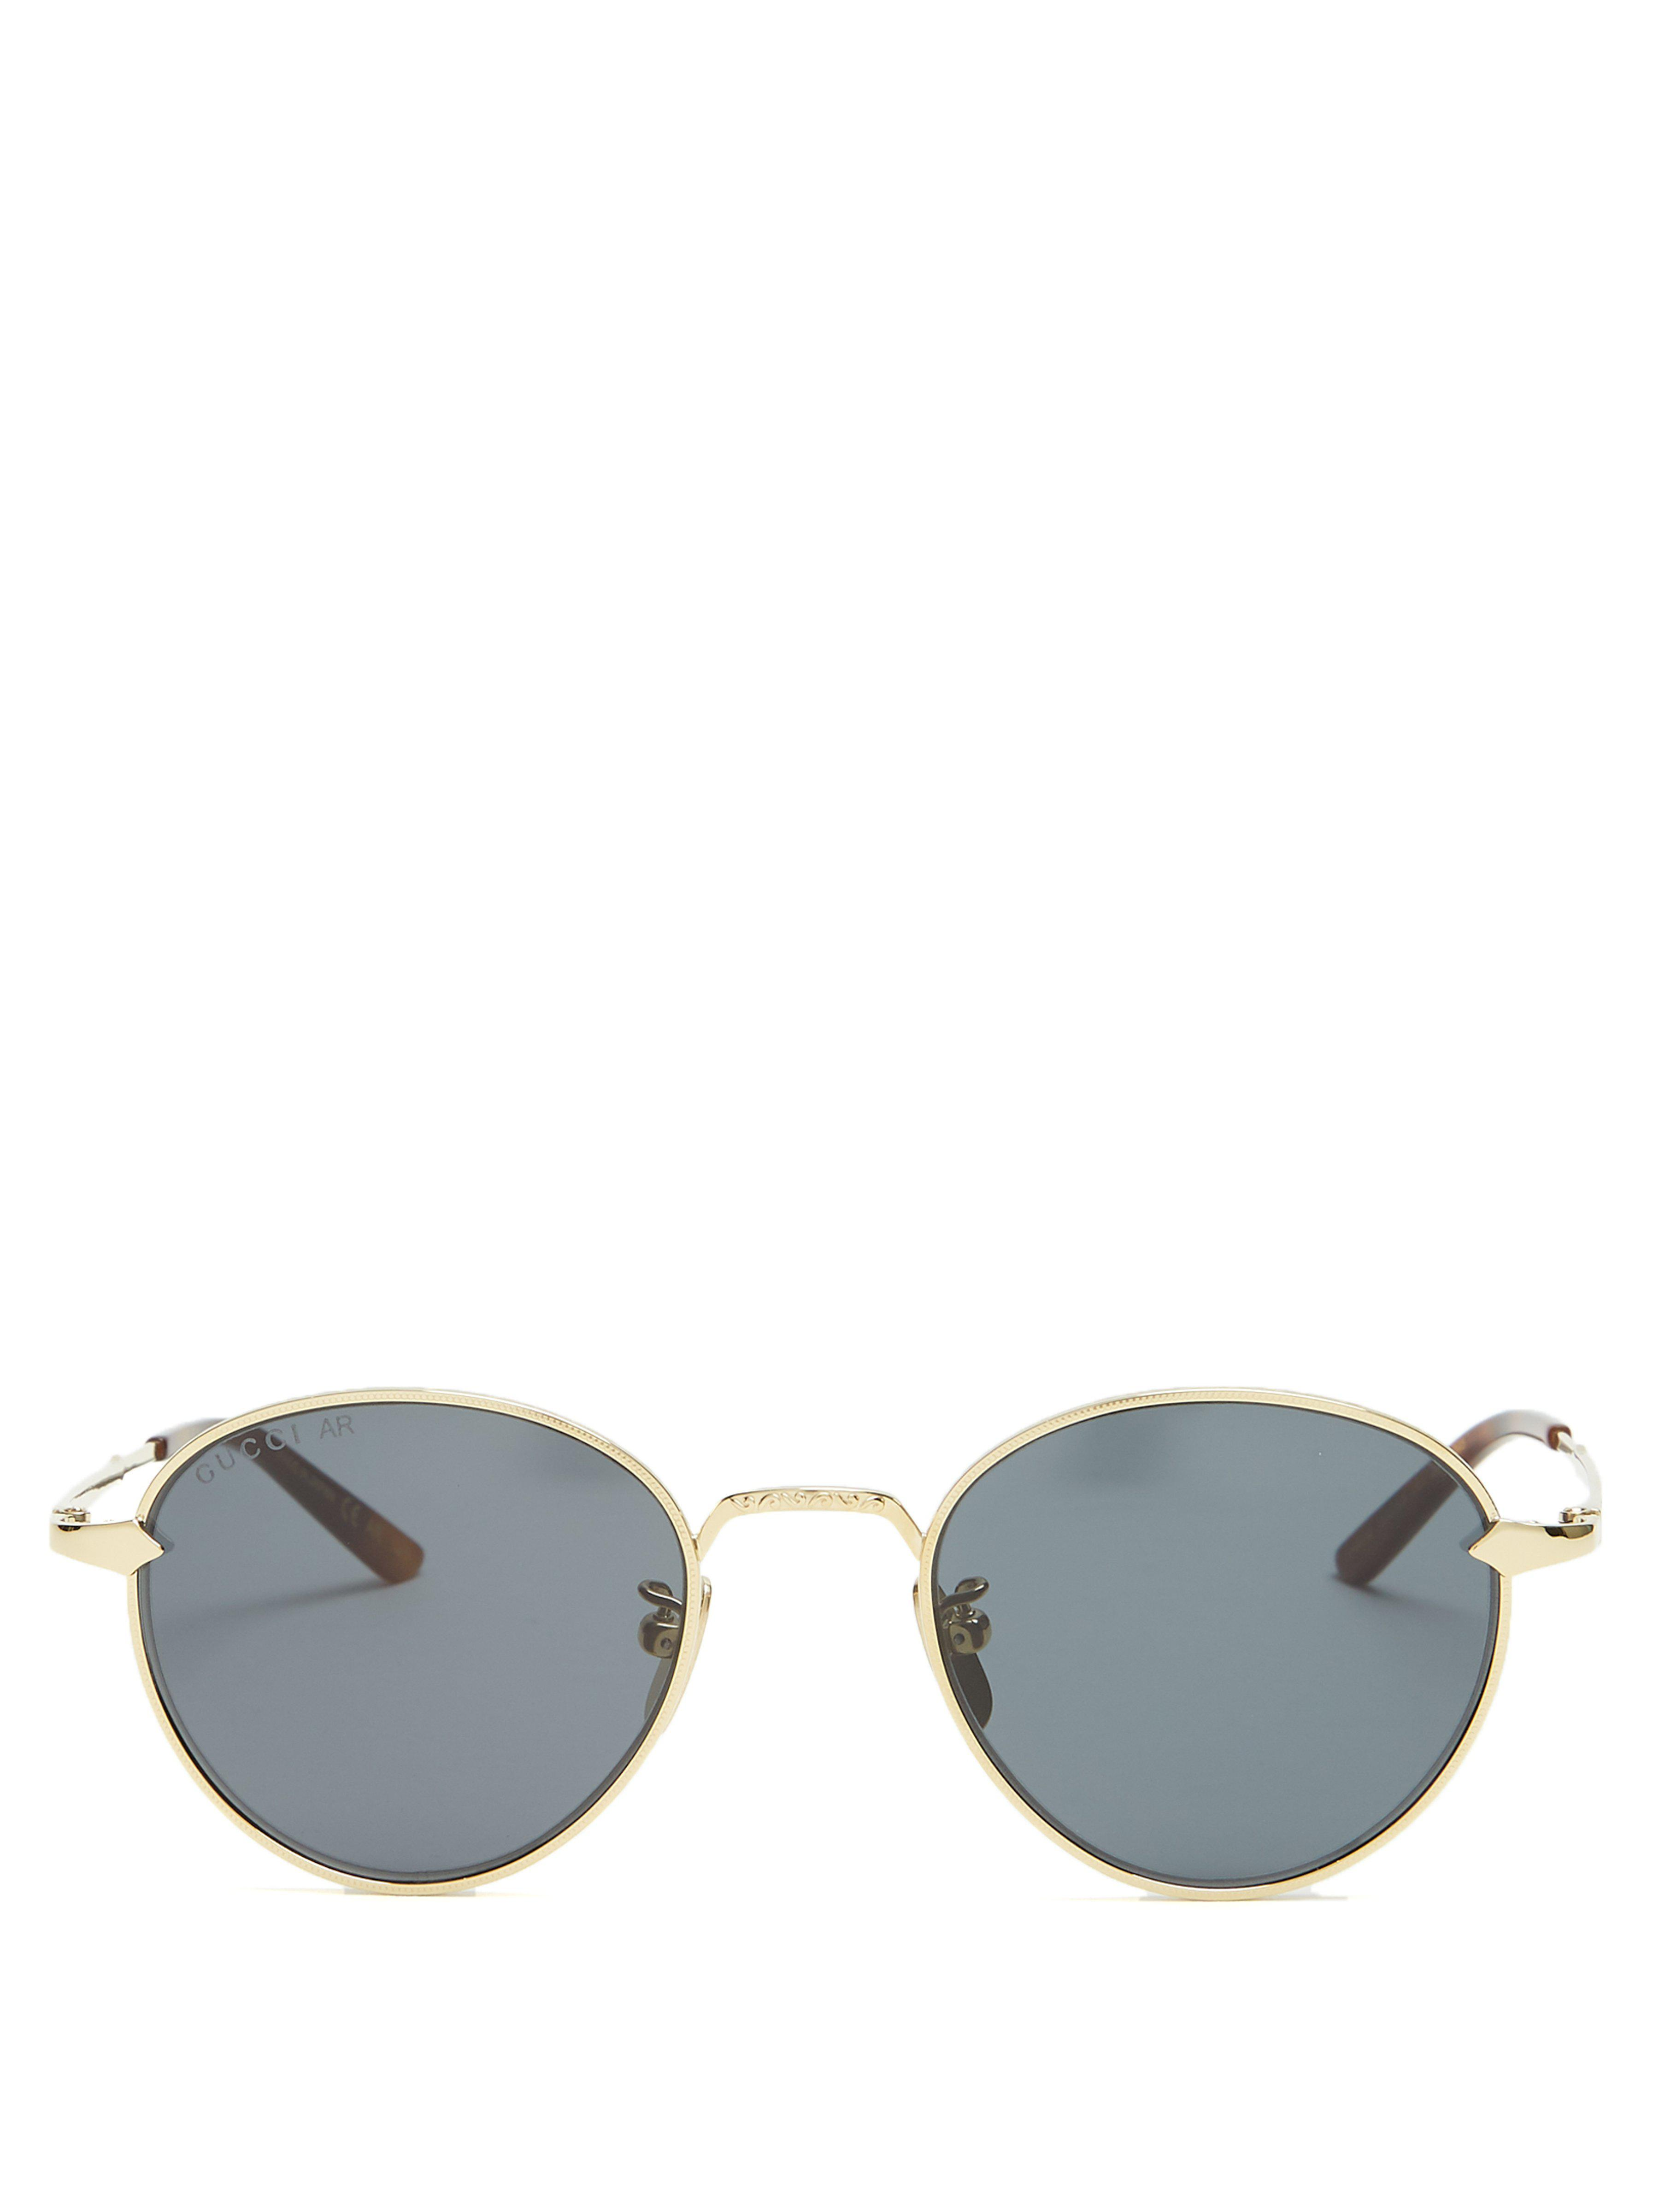 a2938a1ce37 Gucci Round Frame Sunglasses in Metallic for Men - Lyst